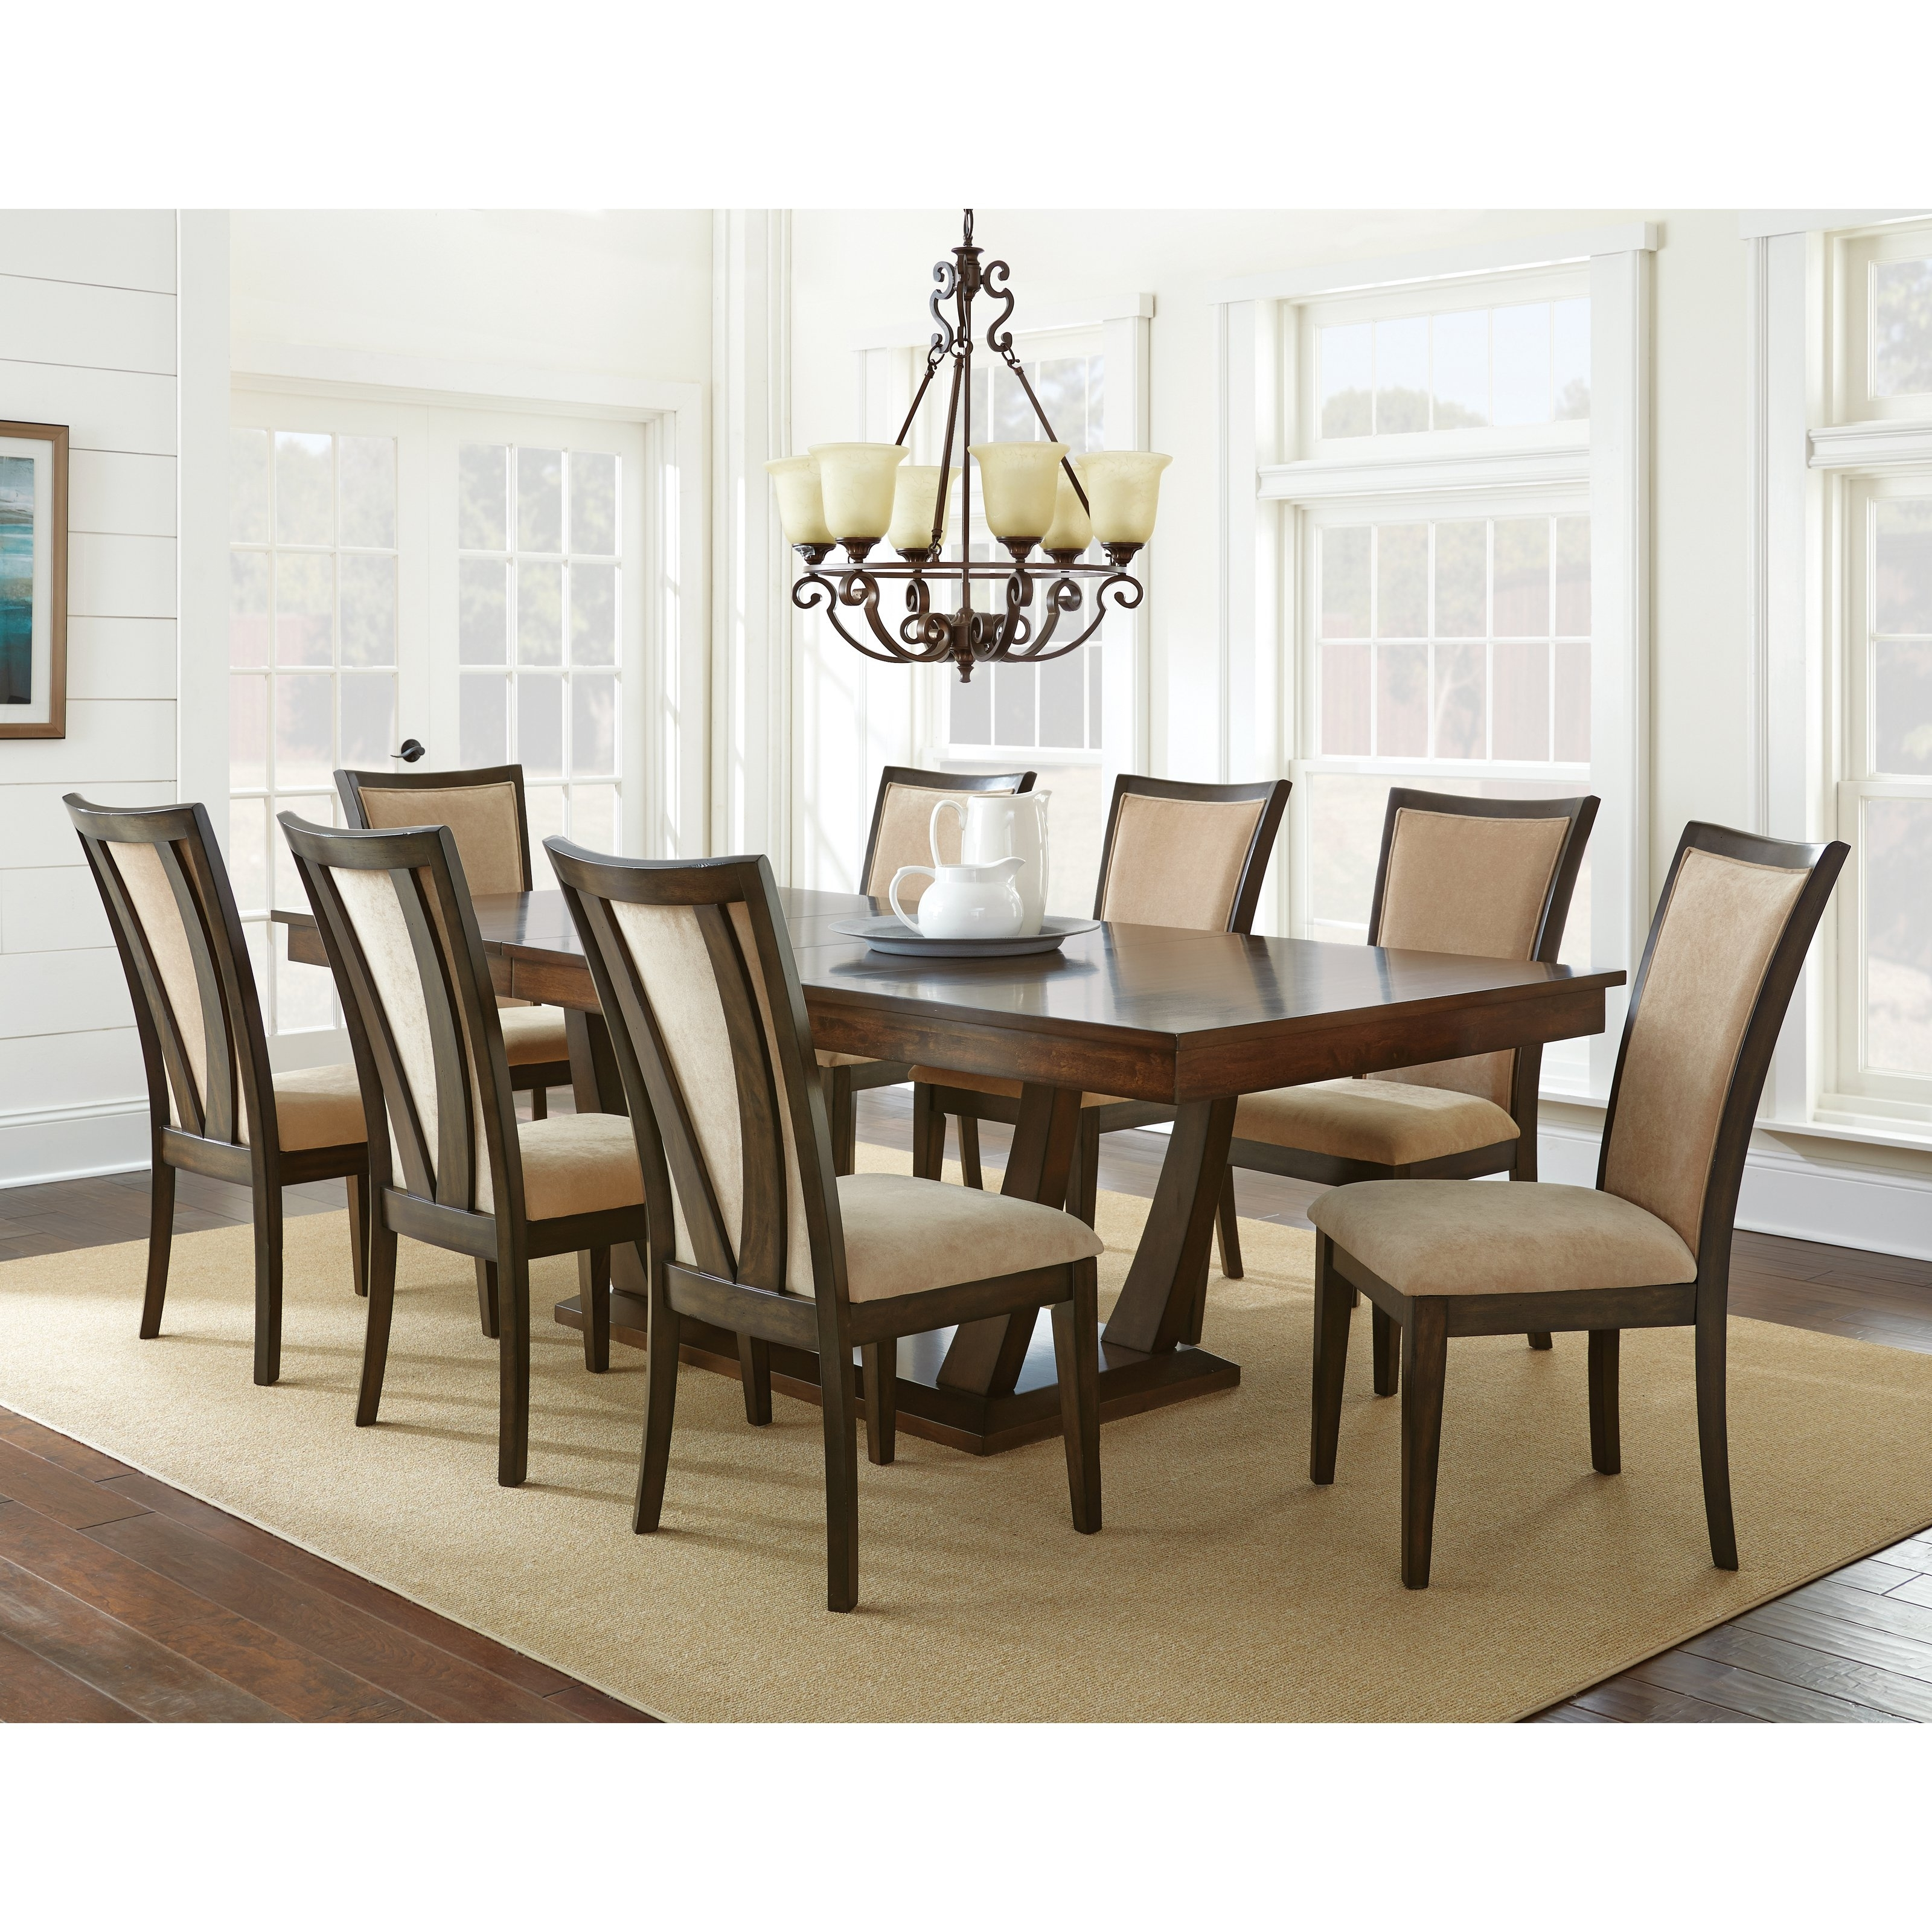 Steve Silver Gabrielle 9 Piece Dining Table Set – Medium Walnut Within Most Current Logan 7 Piece Dining Sets (View 20 of 25)